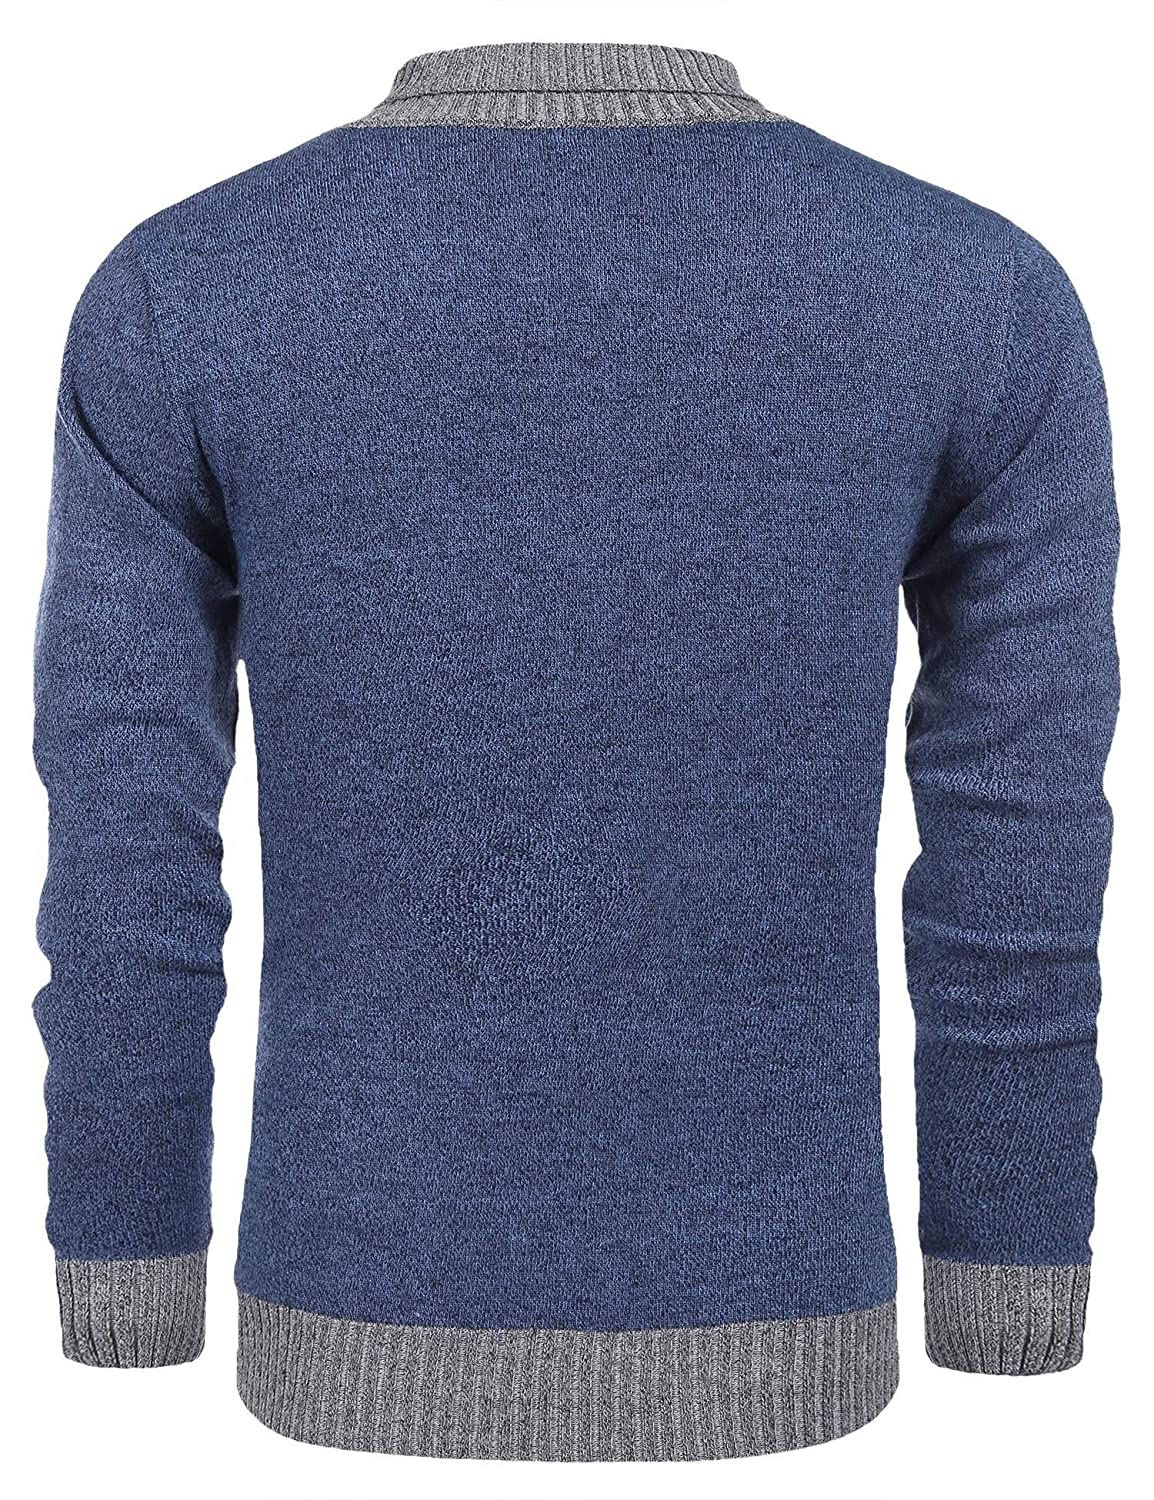 Coofandy Mens Knitted Sweaters Casual V-neck Slim Fit Pullover Knitwear